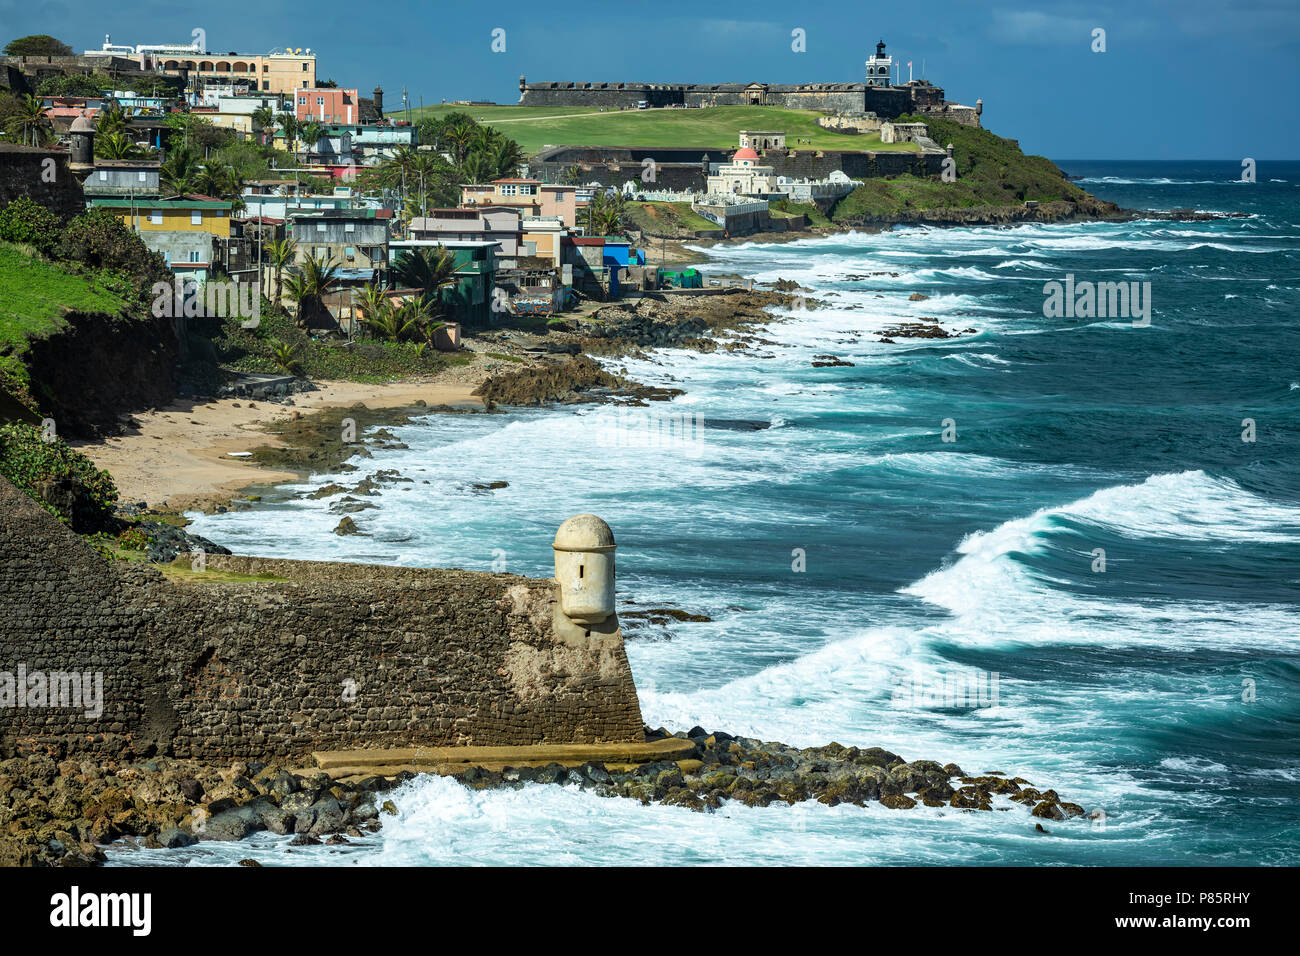 Garita del Diablo (Devil's Sentry Box), San Cristobal Castle (foreground), La Perla Barrio and San Felipe del Morro Castle (in distance), San Juan Nat Stock Photo